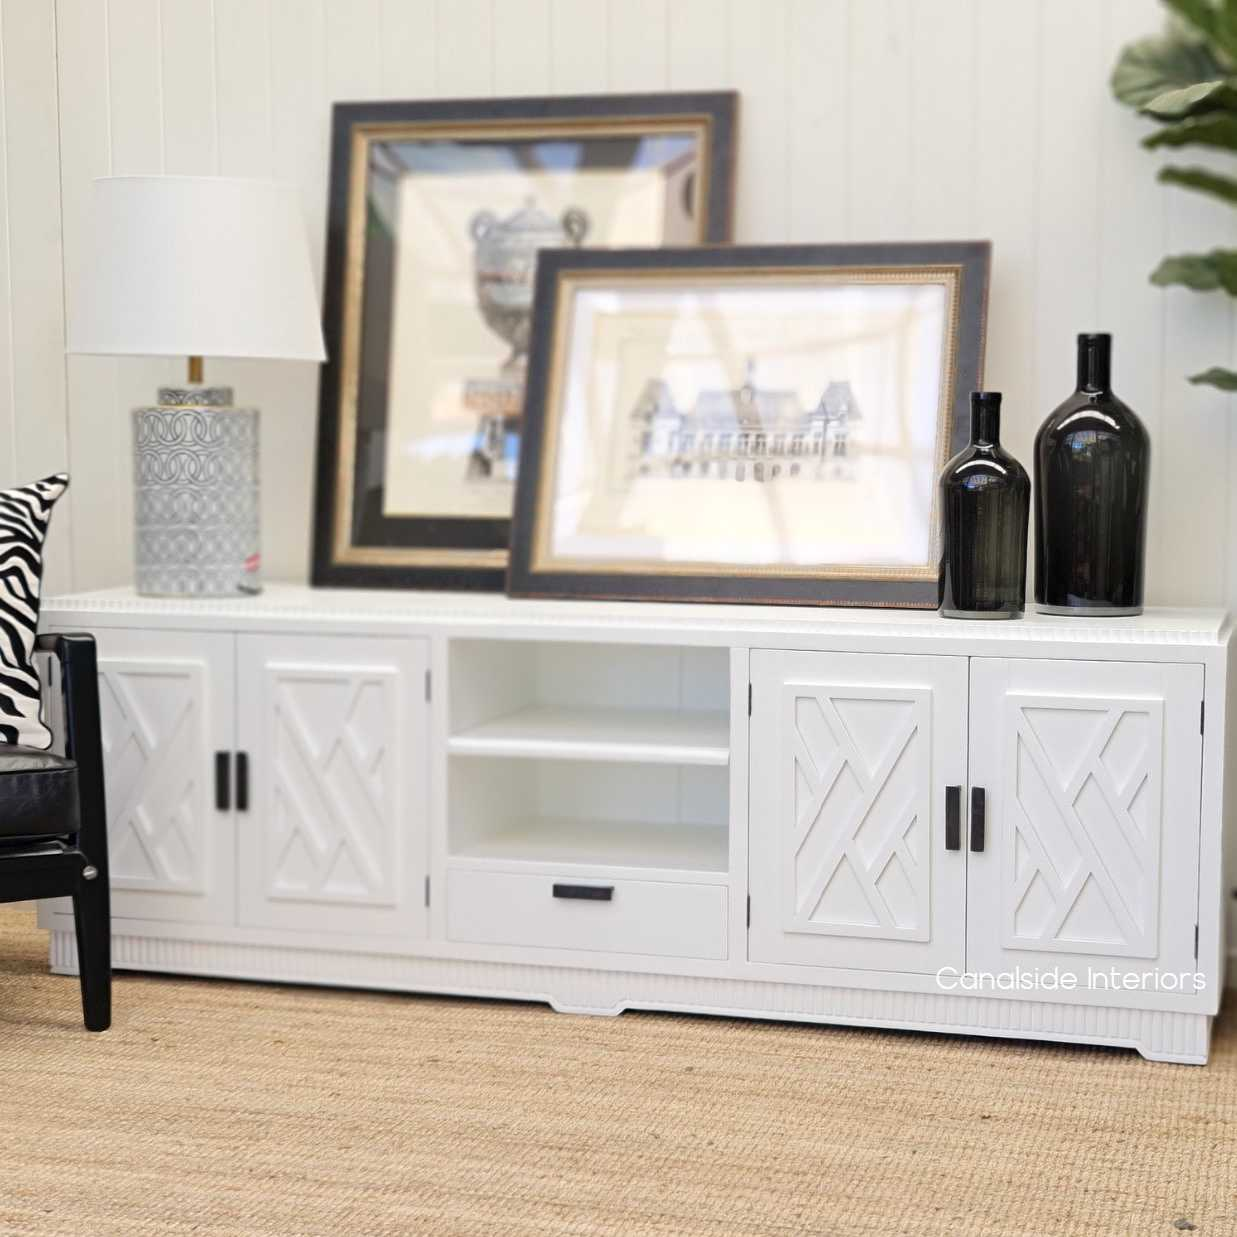 Ellery 4 Door TV Unit Sideboard White  HAMPTONS Style, PLANTATION Style, LIVING Room, LIVING TV Media & Storage, TABLES Sideboards & Buffets, STORAGE, STORAGE Sideboards & Buffets, PLANTATION STYLE Media Unit hollywood regency hollywood glam chinoiserie